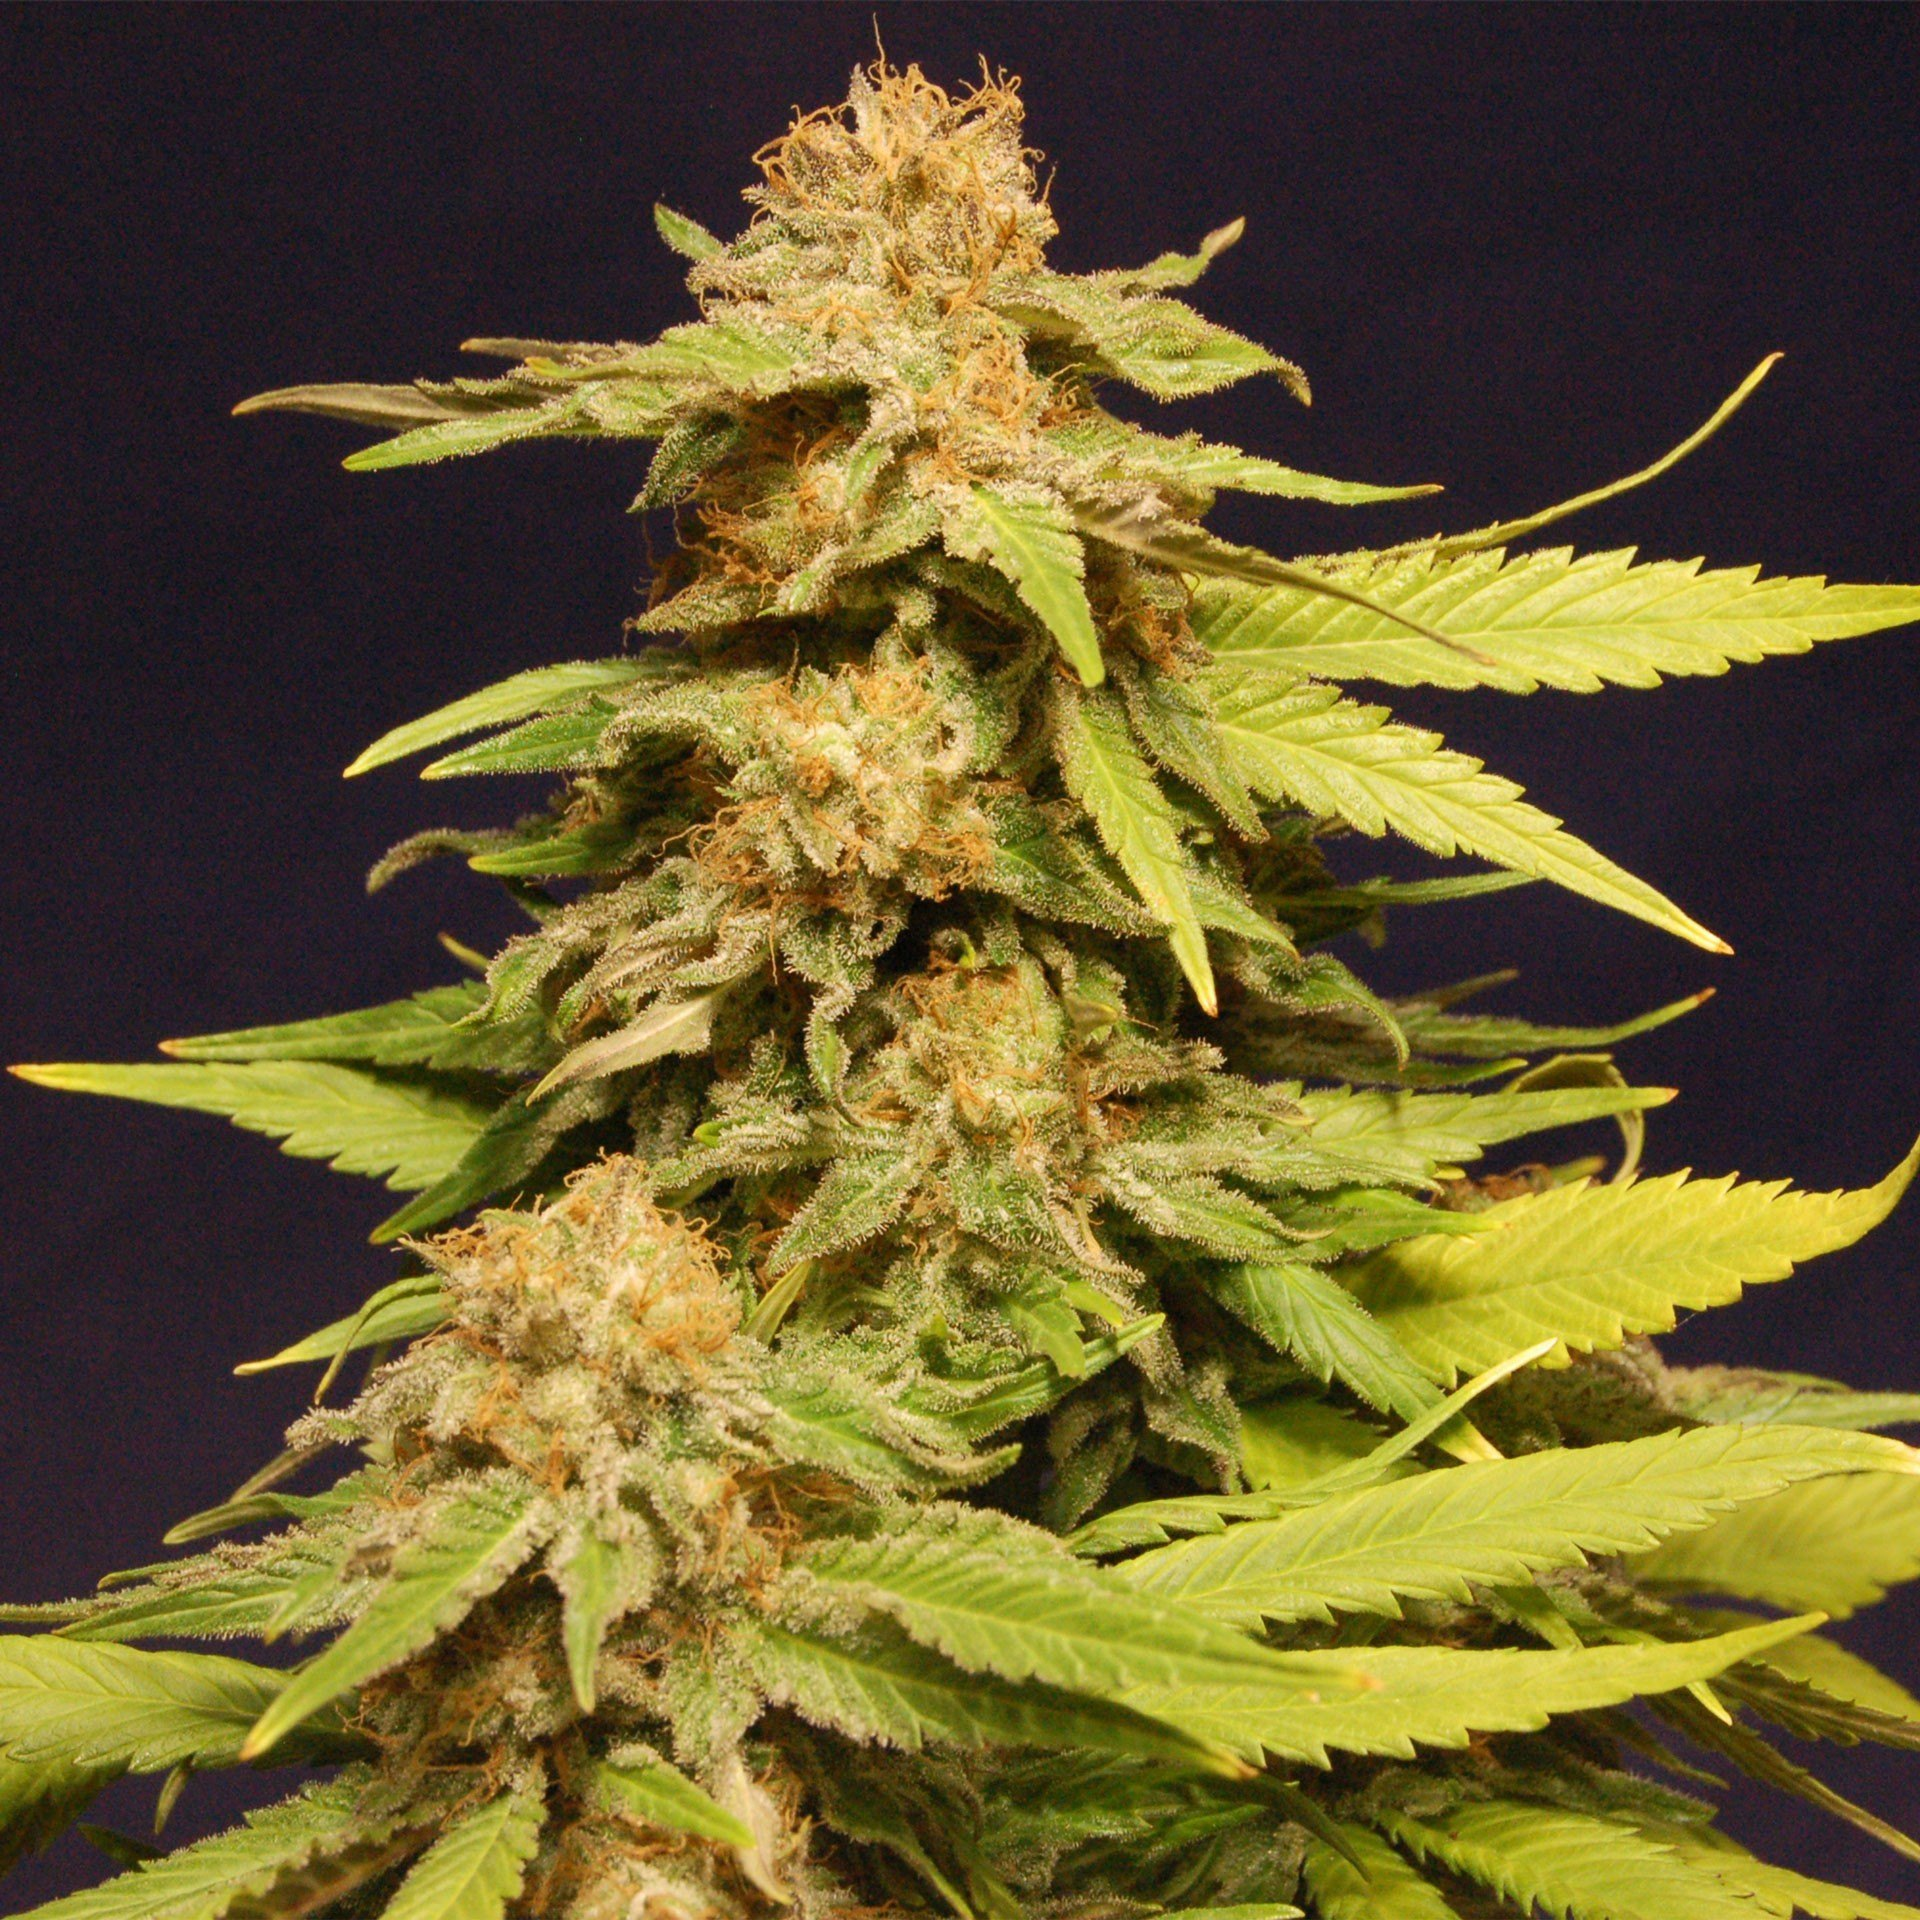 Big Bull Kannabia Seeds